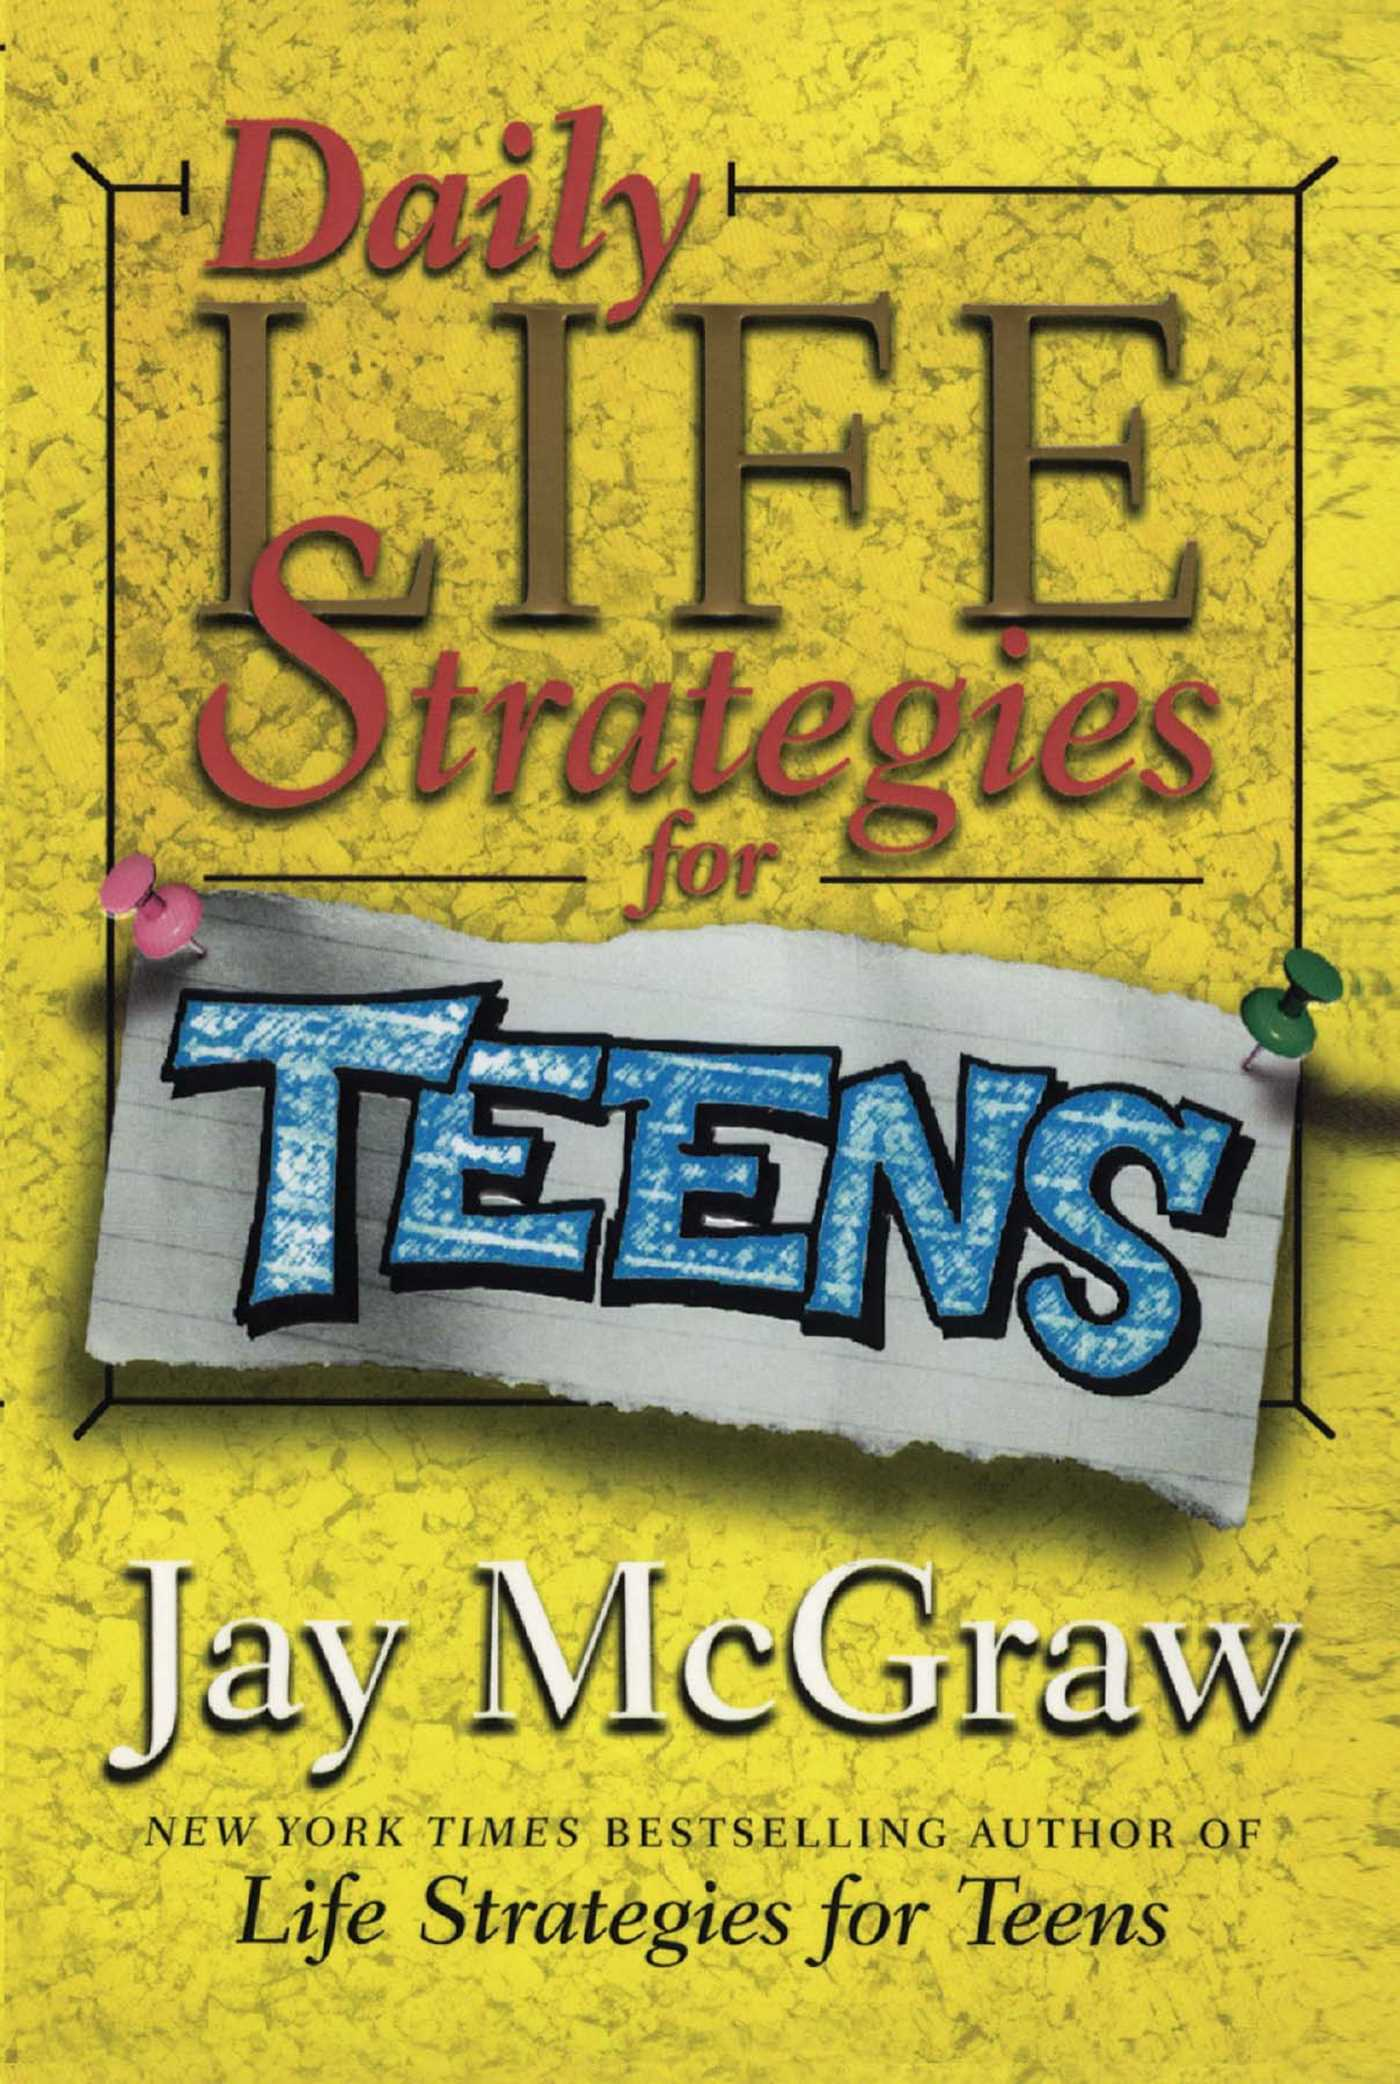 Daily-life-strategies-for-teens-9781439105023_hr